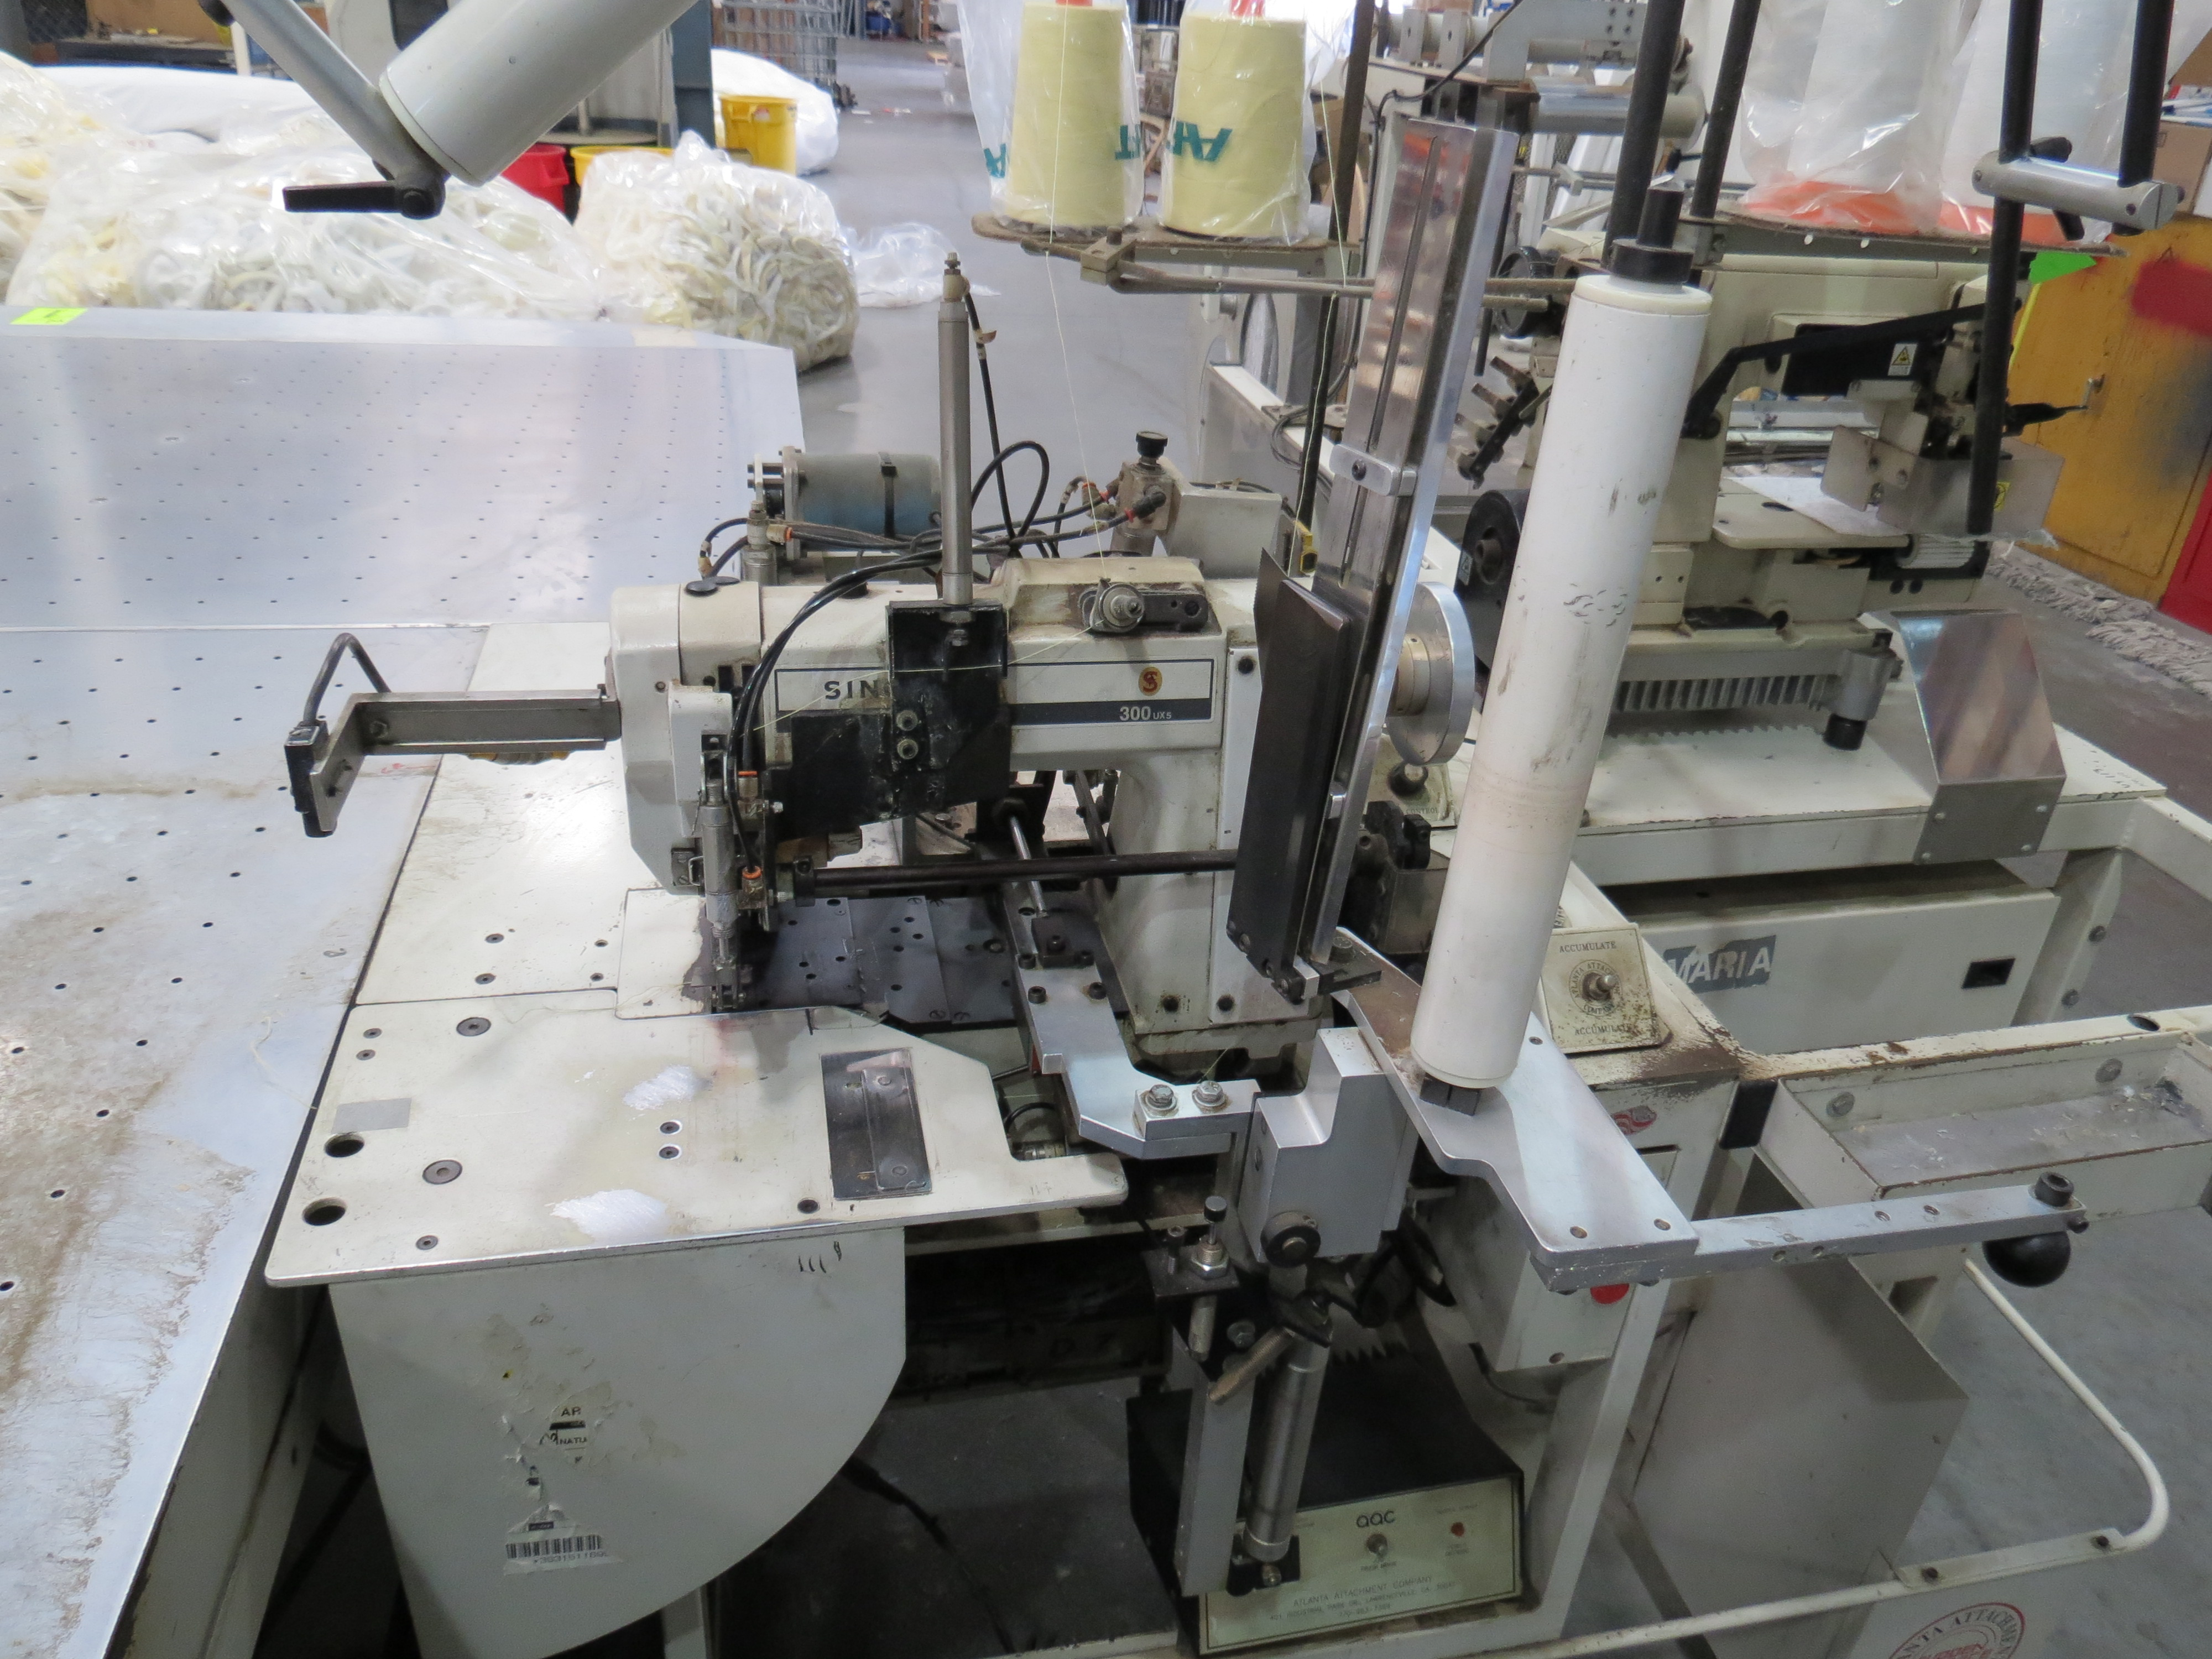 Atlanta Attachment Company VM1804P-NG-002 Gusset Sewing Machine with Flotation Table 8' x 13' - Image 4 of 8